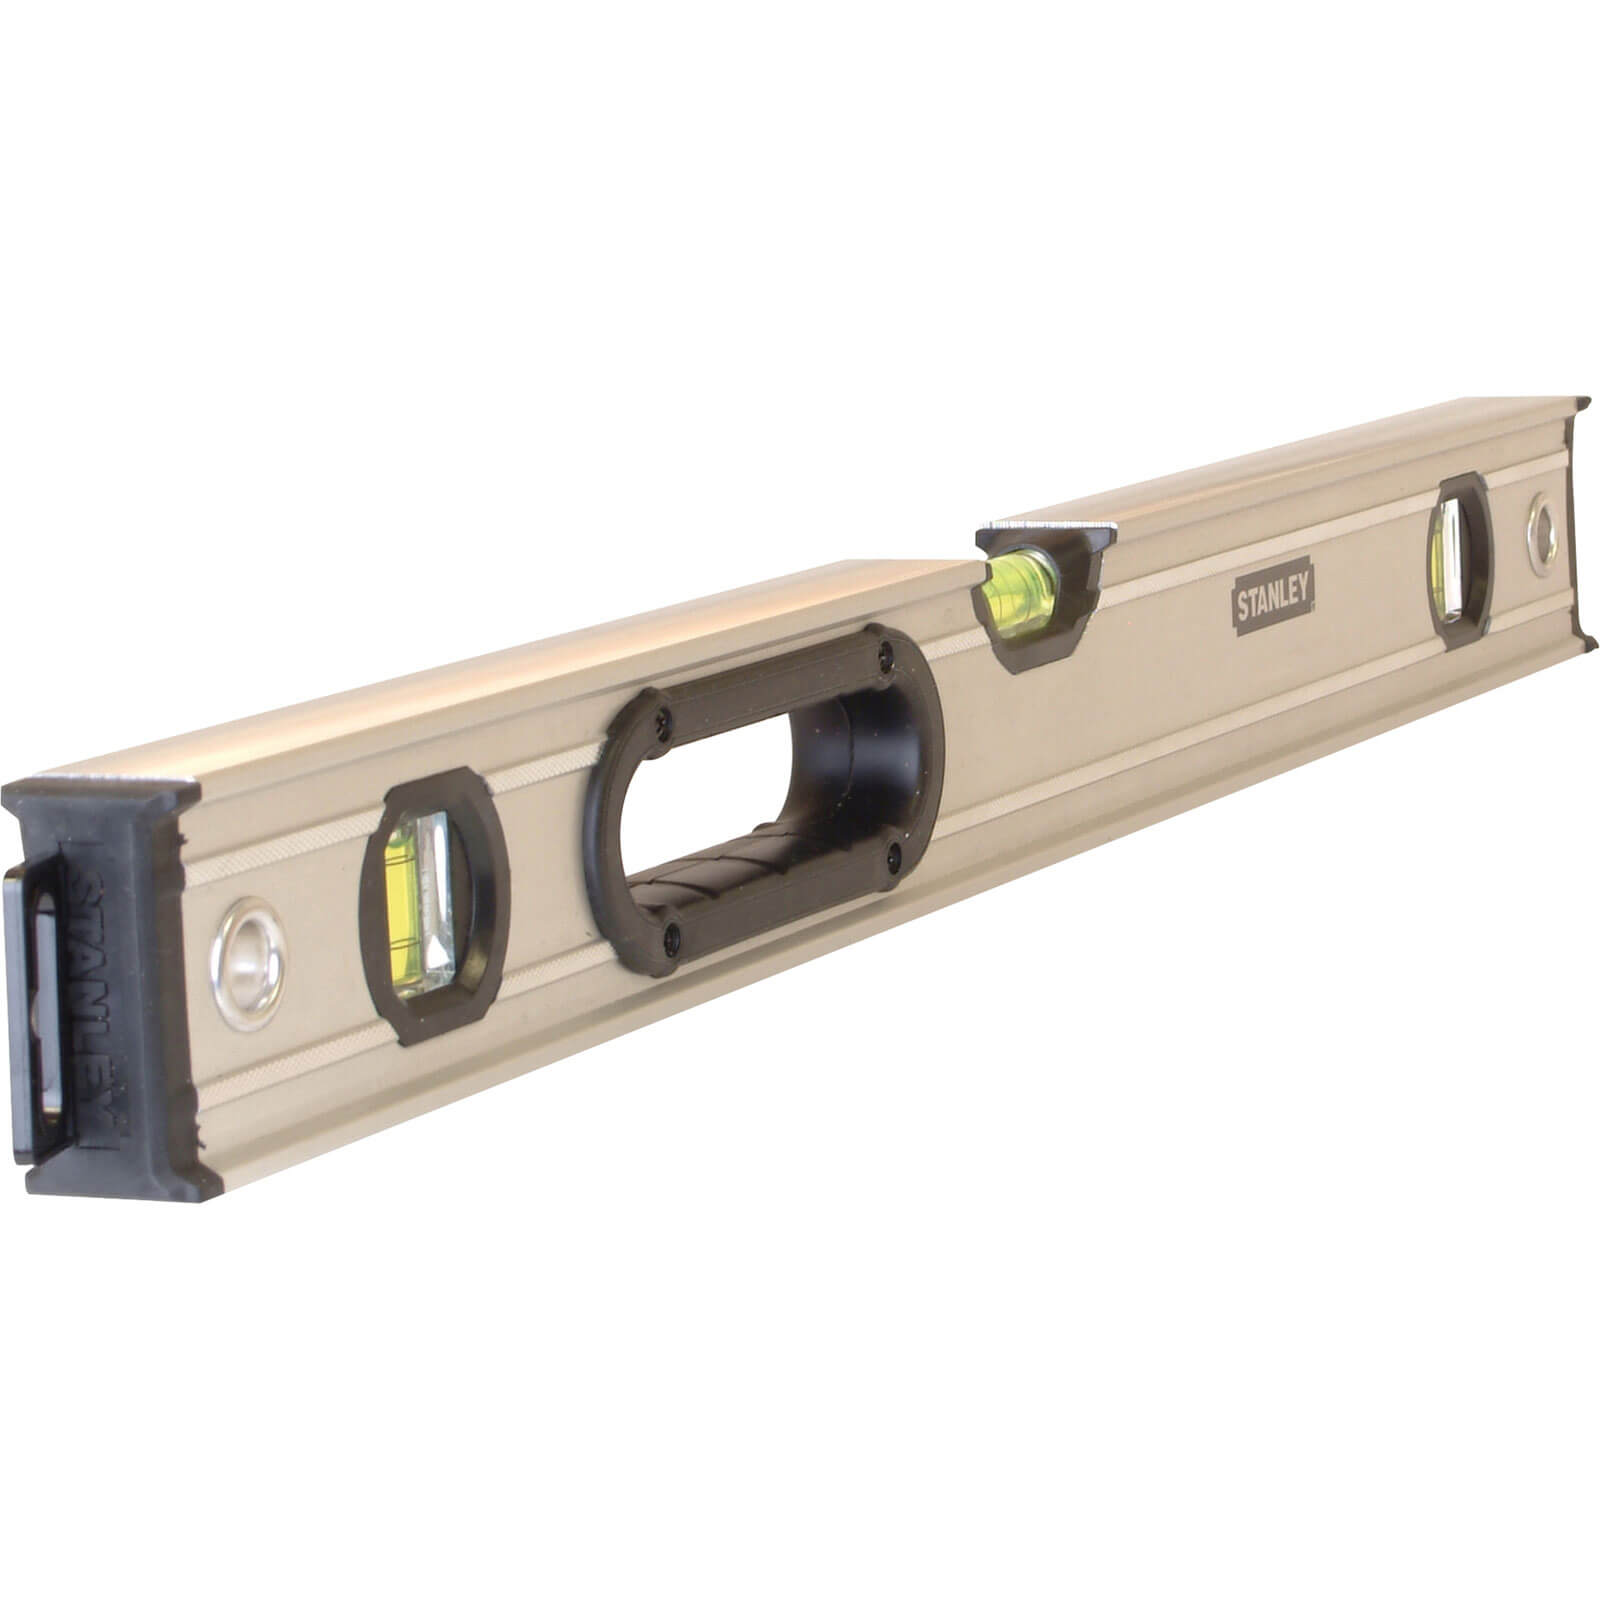 Stanley FatMax XTREME Box Beam 3 Vial Spirit Level 90cm / 36